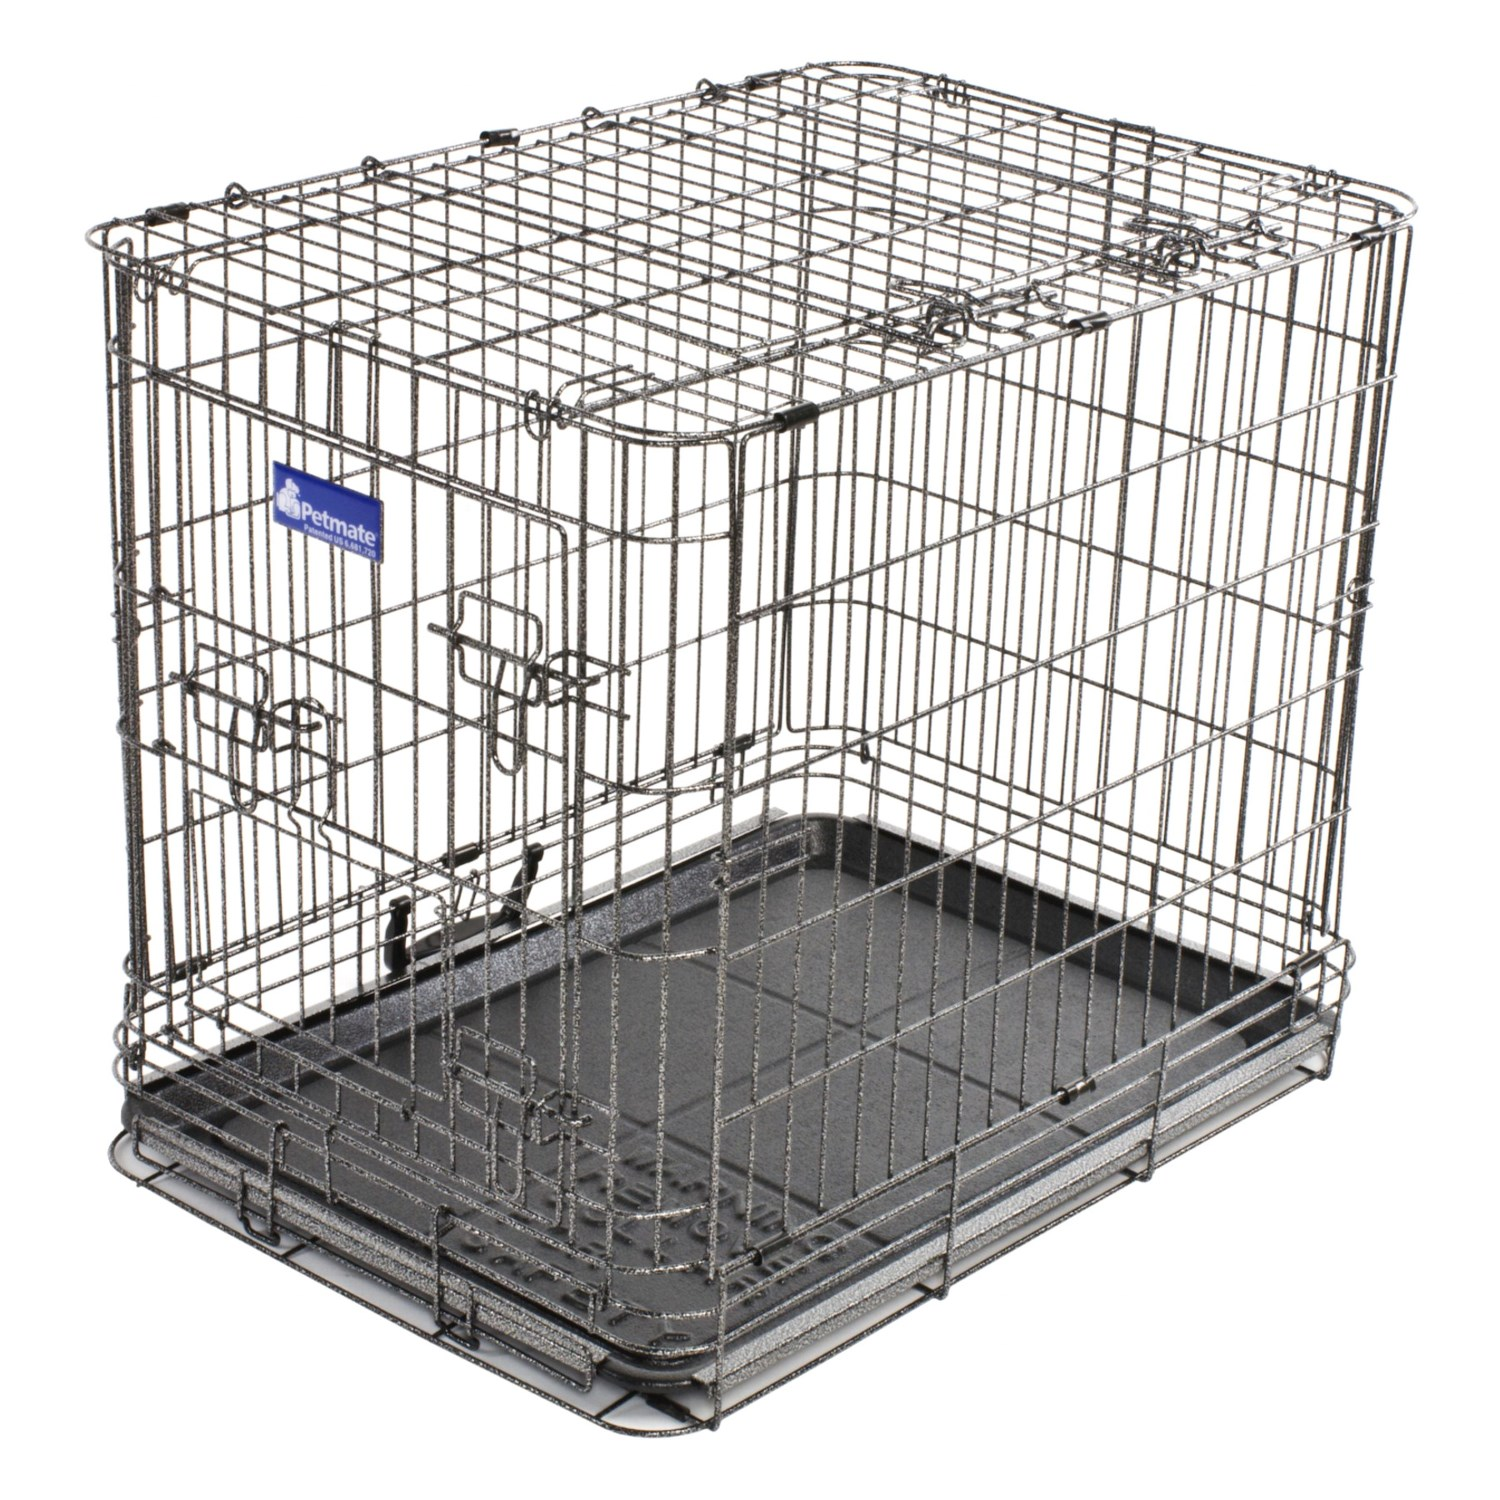 Petmate deluxe edition wire dog kennel large 29997 for Petmate large dog kennel